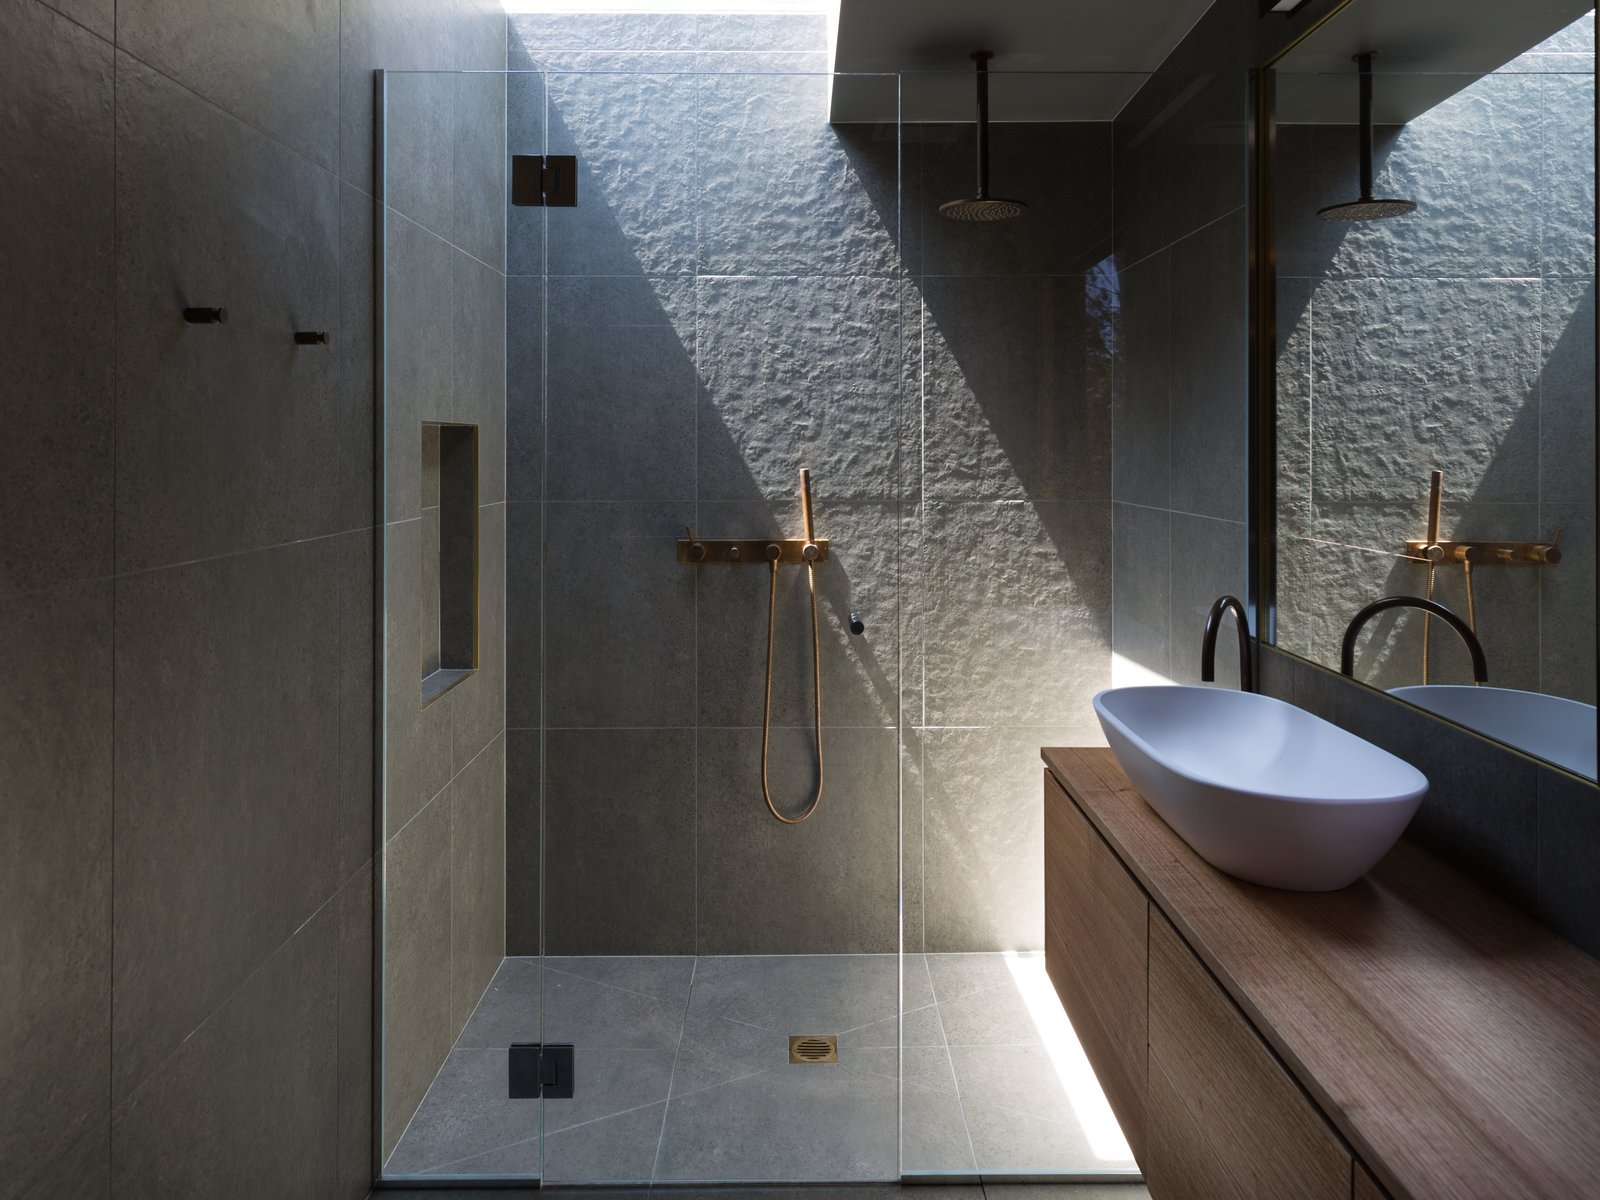 Bath Room, Enclosed Shower, Stone Tile Wall, Wood Counter, and Vessel Sink A skylight brightens the shower area.  Photo 10 of 16 in A Melbourne Couple Escape City Living in This Tasmanian Retreat